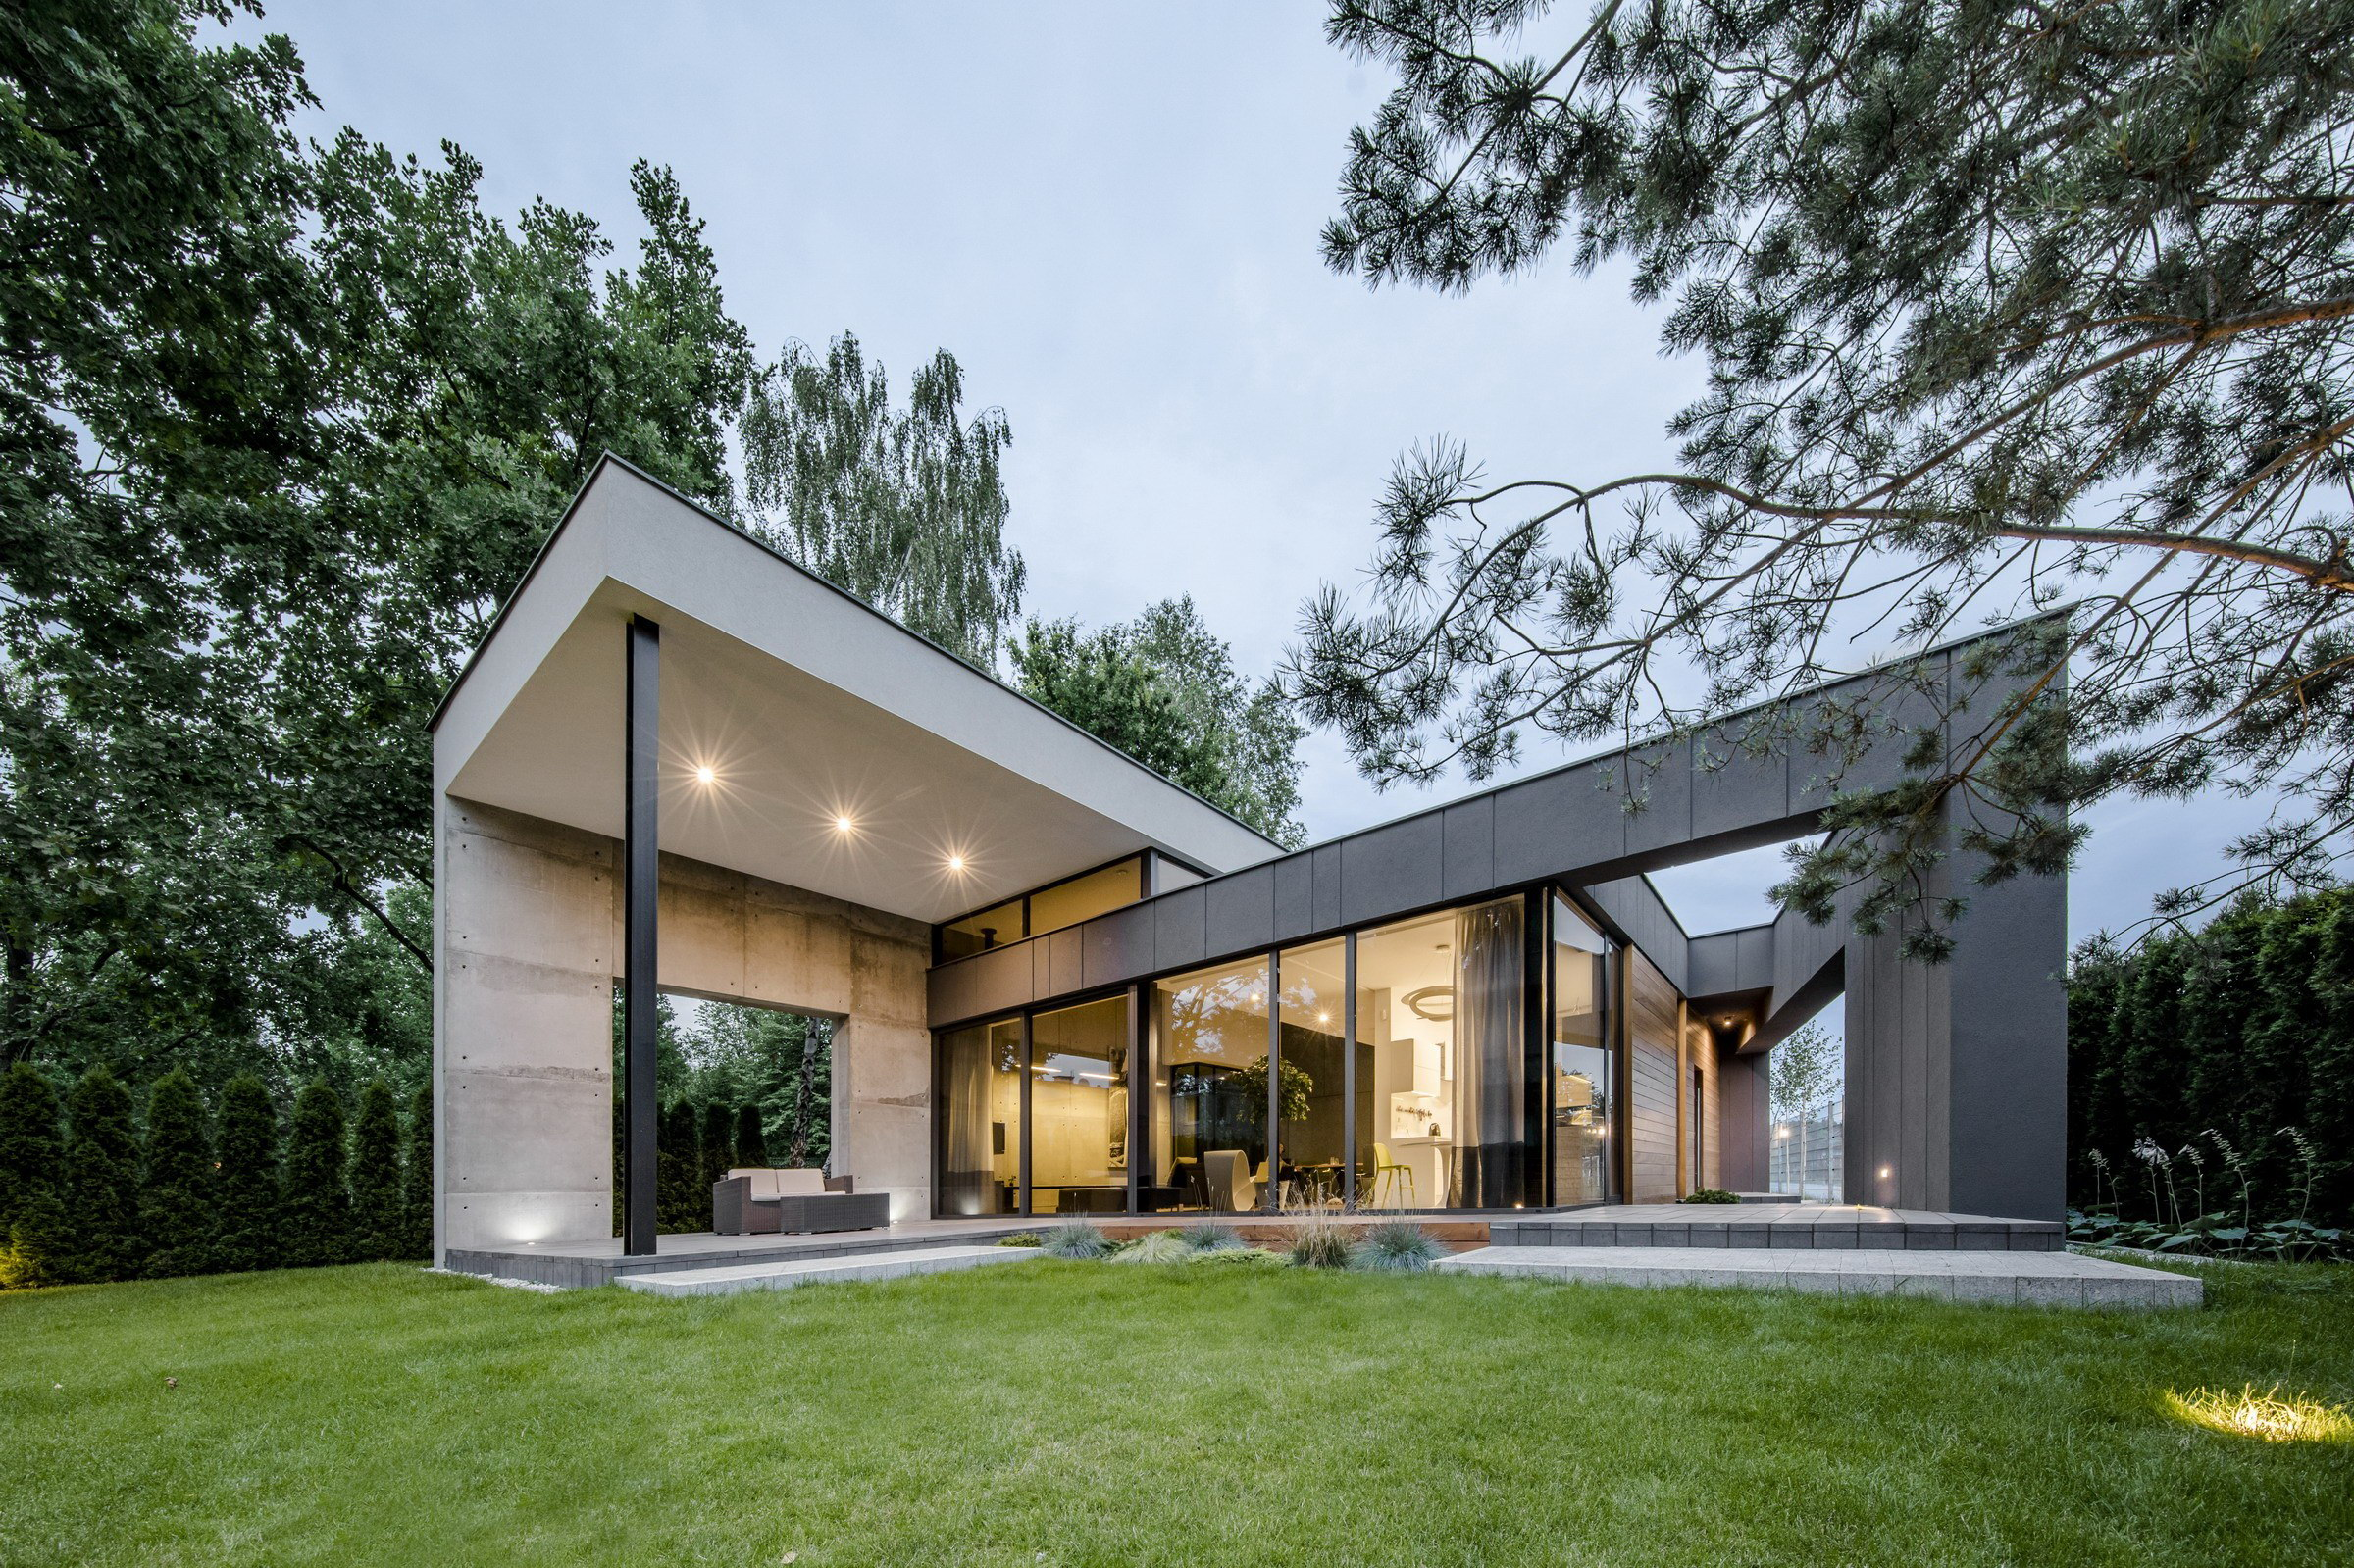 FIL House by Beczak Beczak Architekci